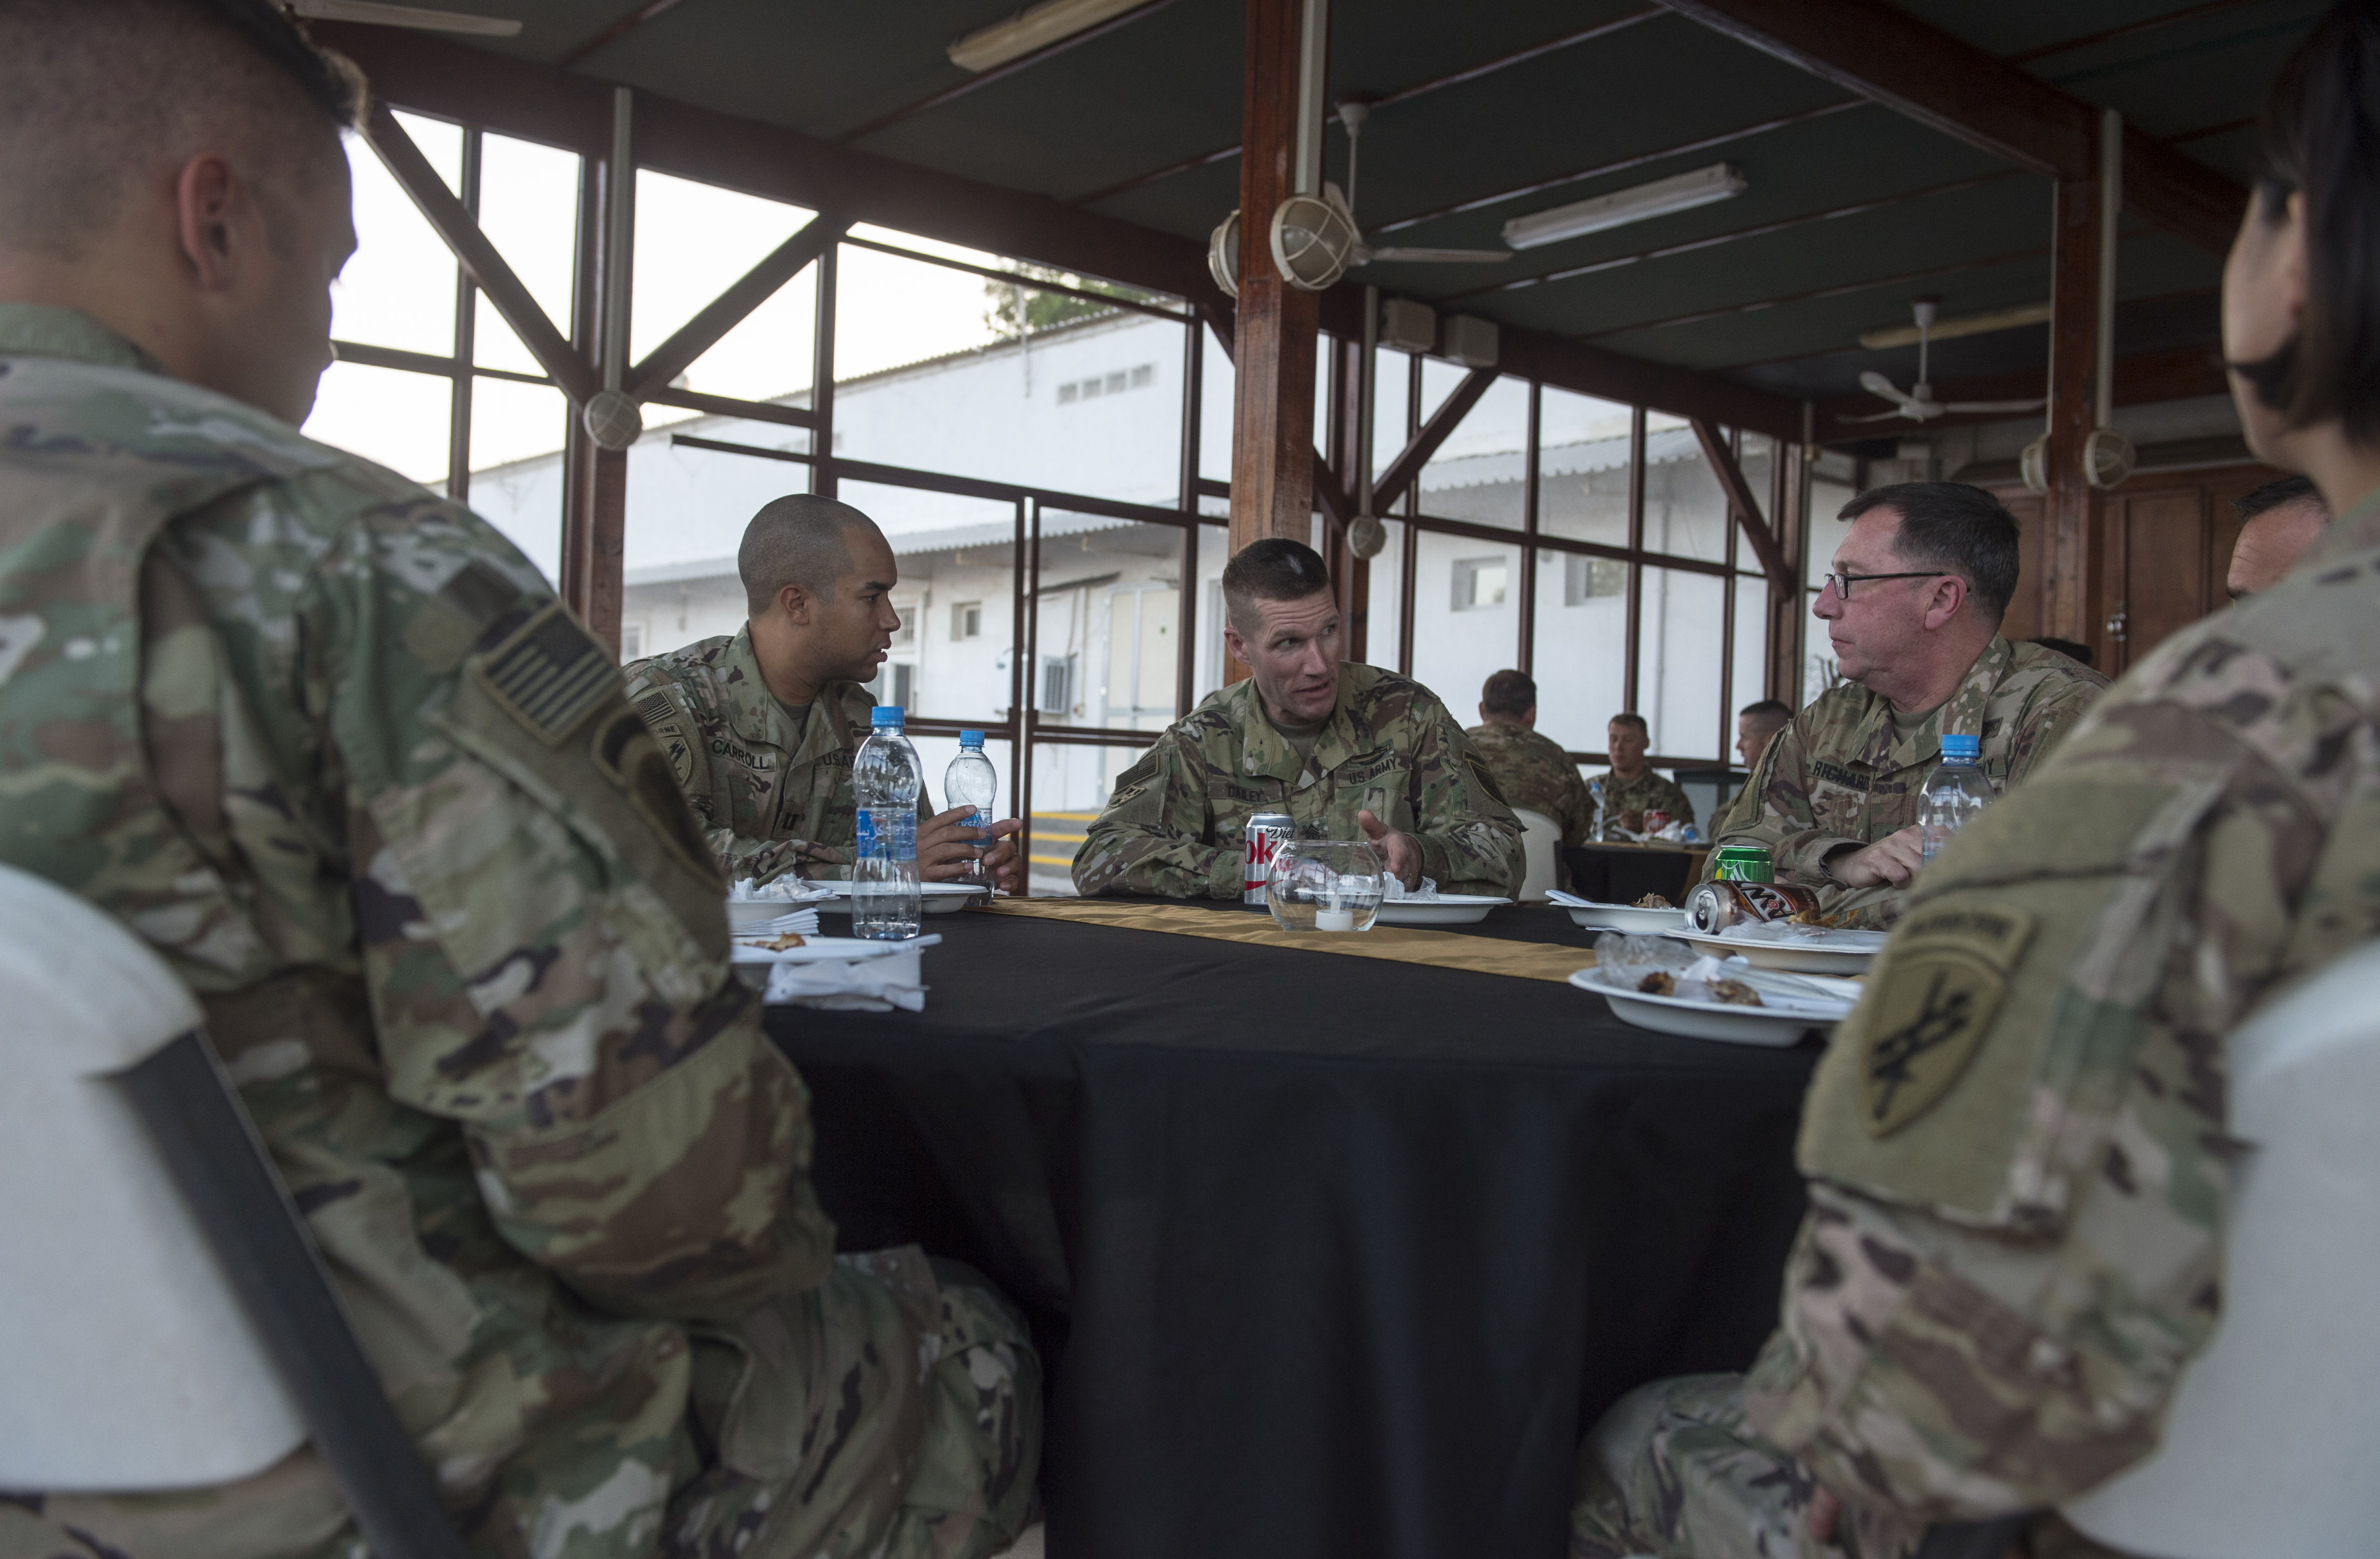 U.S. Sgt. Maj. of the Army Daniel Dailey visits with Soldiers assigned to Combined Joint Task Force - Horn of Africa at Camp Lemonnier, Djibouti, Dec. 21, 2017. Camp Lemonnier was Dailey's last stop before returning to the United States as he visited with Soldiers and other service members deployed and away from their families during the holidays. (U.S. Air Force photo by Staff Sgt. Timothy Moore)